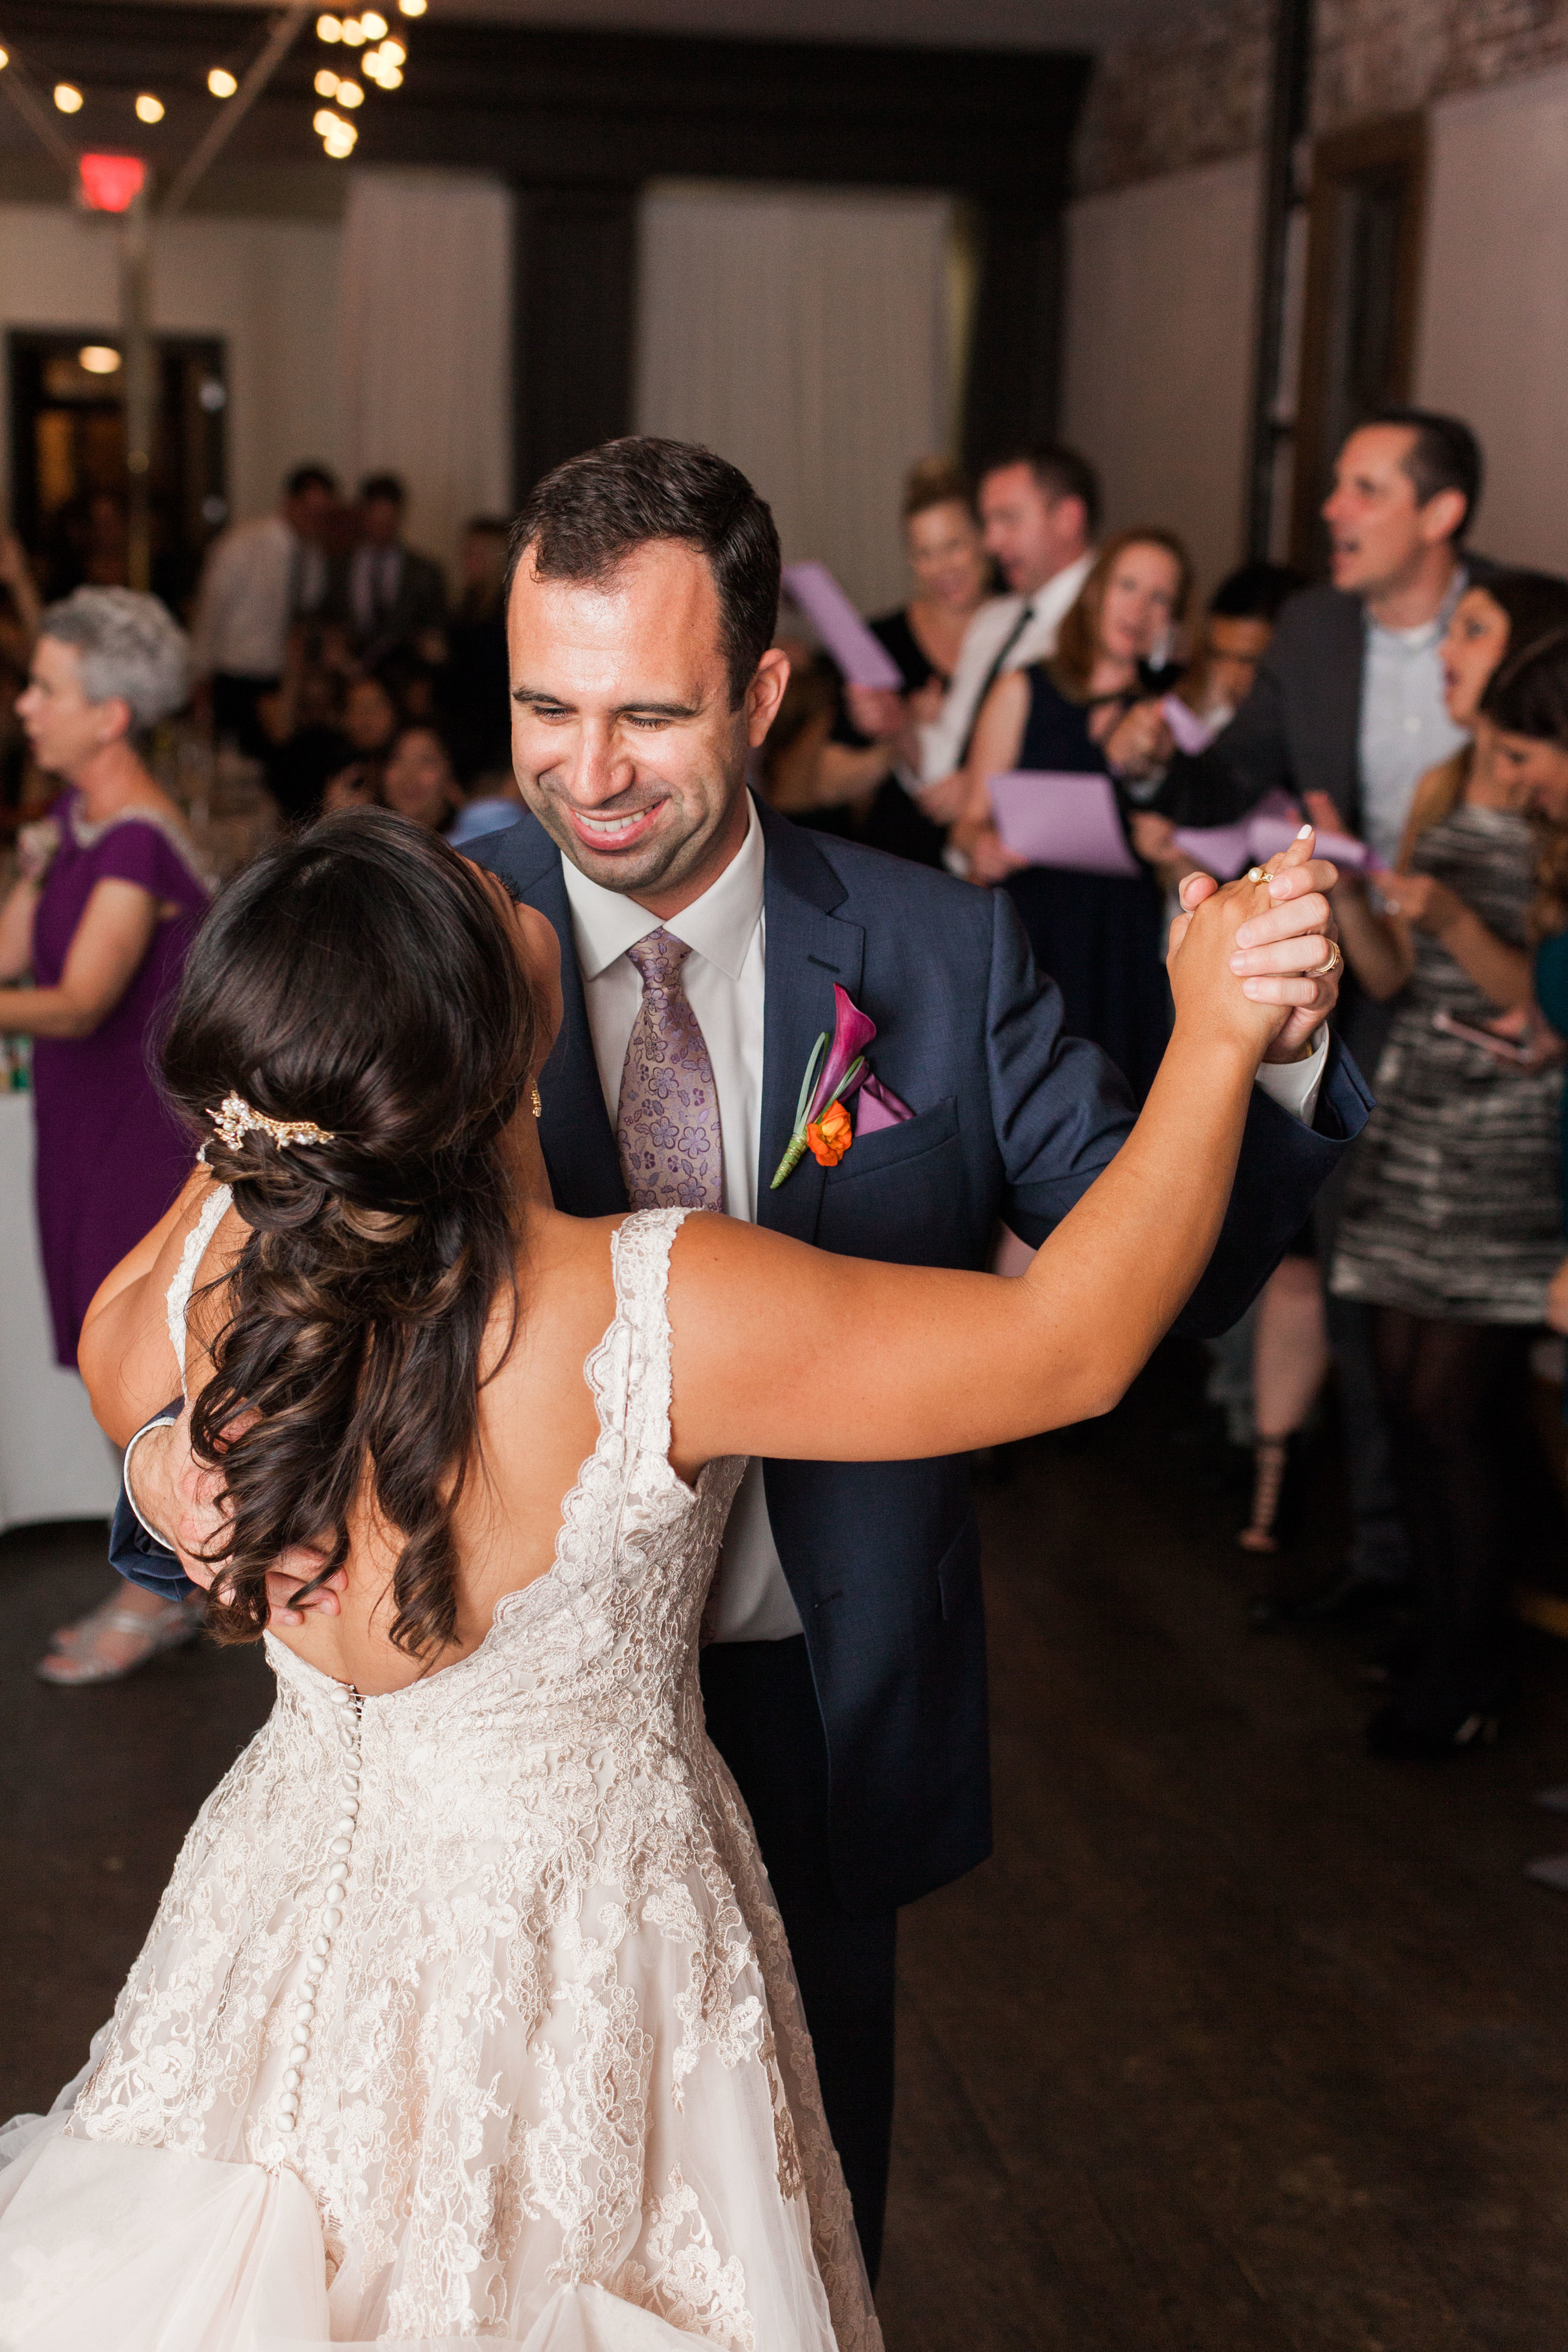 style-inspired-wedding-at-firehouse-8-in-san-francisco-95.jpg